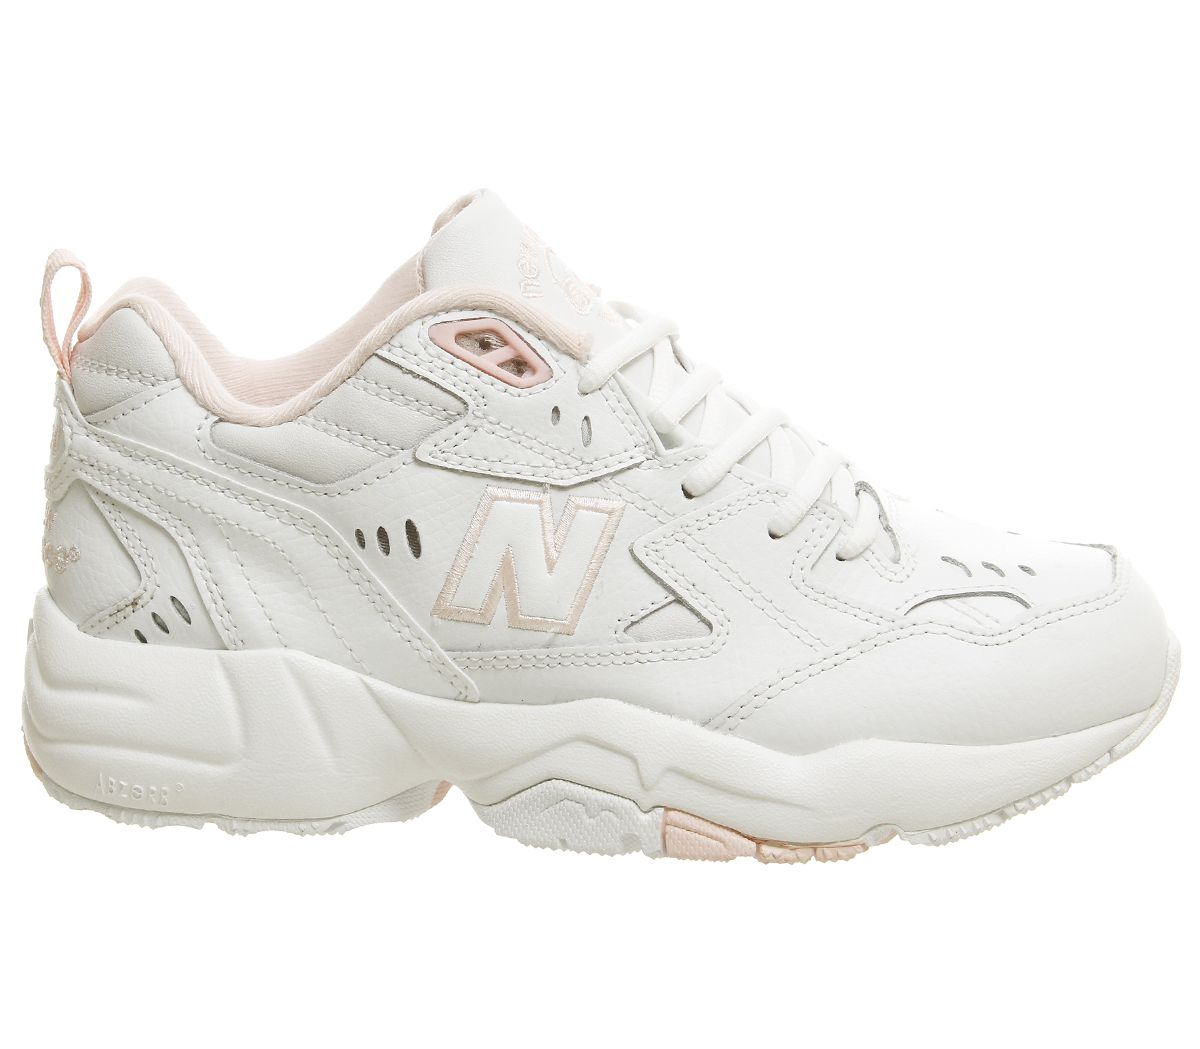 a8f717965130c Womens New Balance 608 Trainers Cream Pink Trainers Shoes